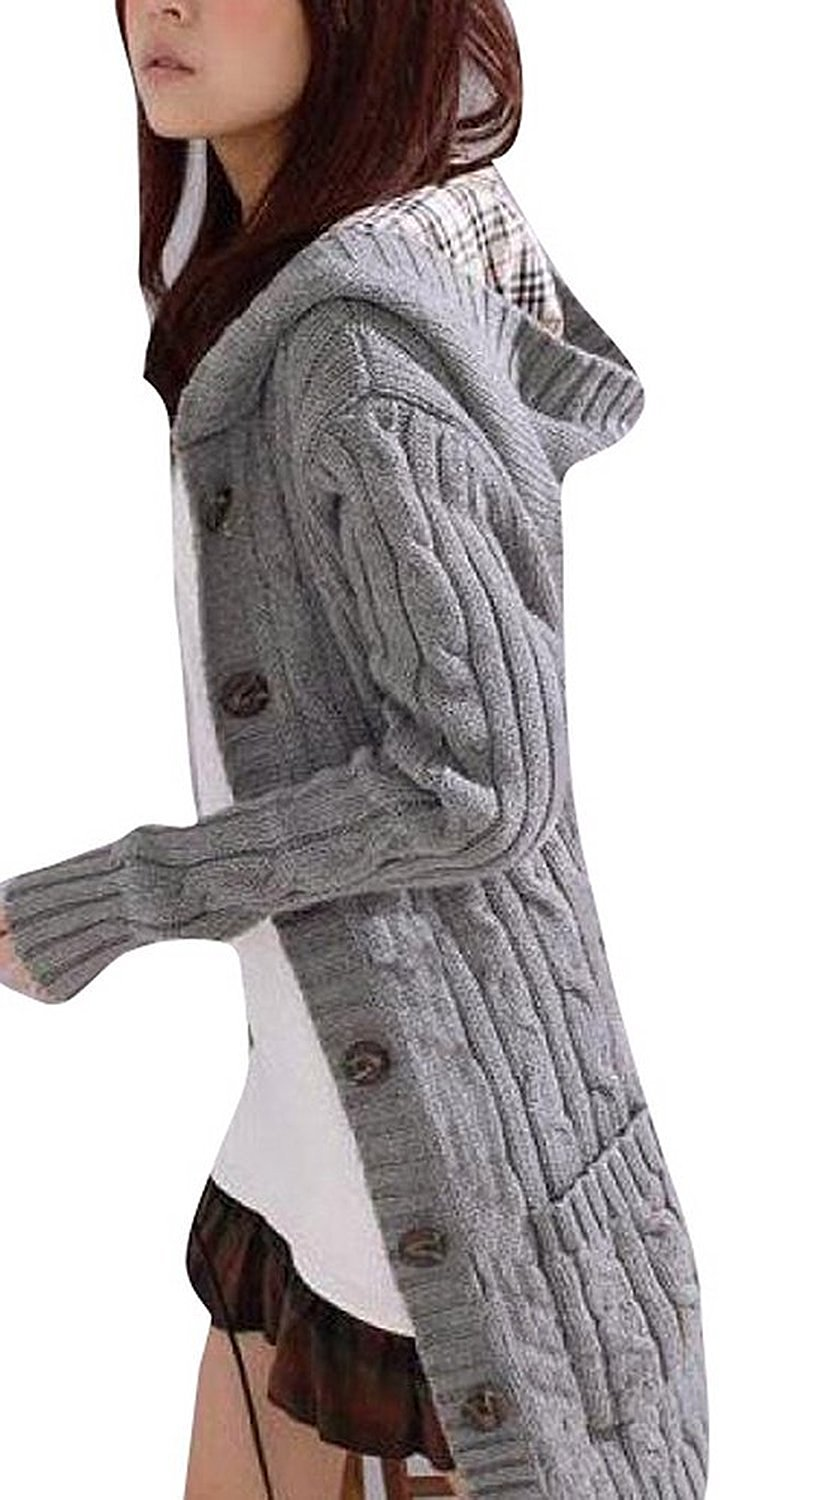 cable knit cardigan minetom womens cable knitted womens grandpa sweater with button long arm  hooded xzujhkg